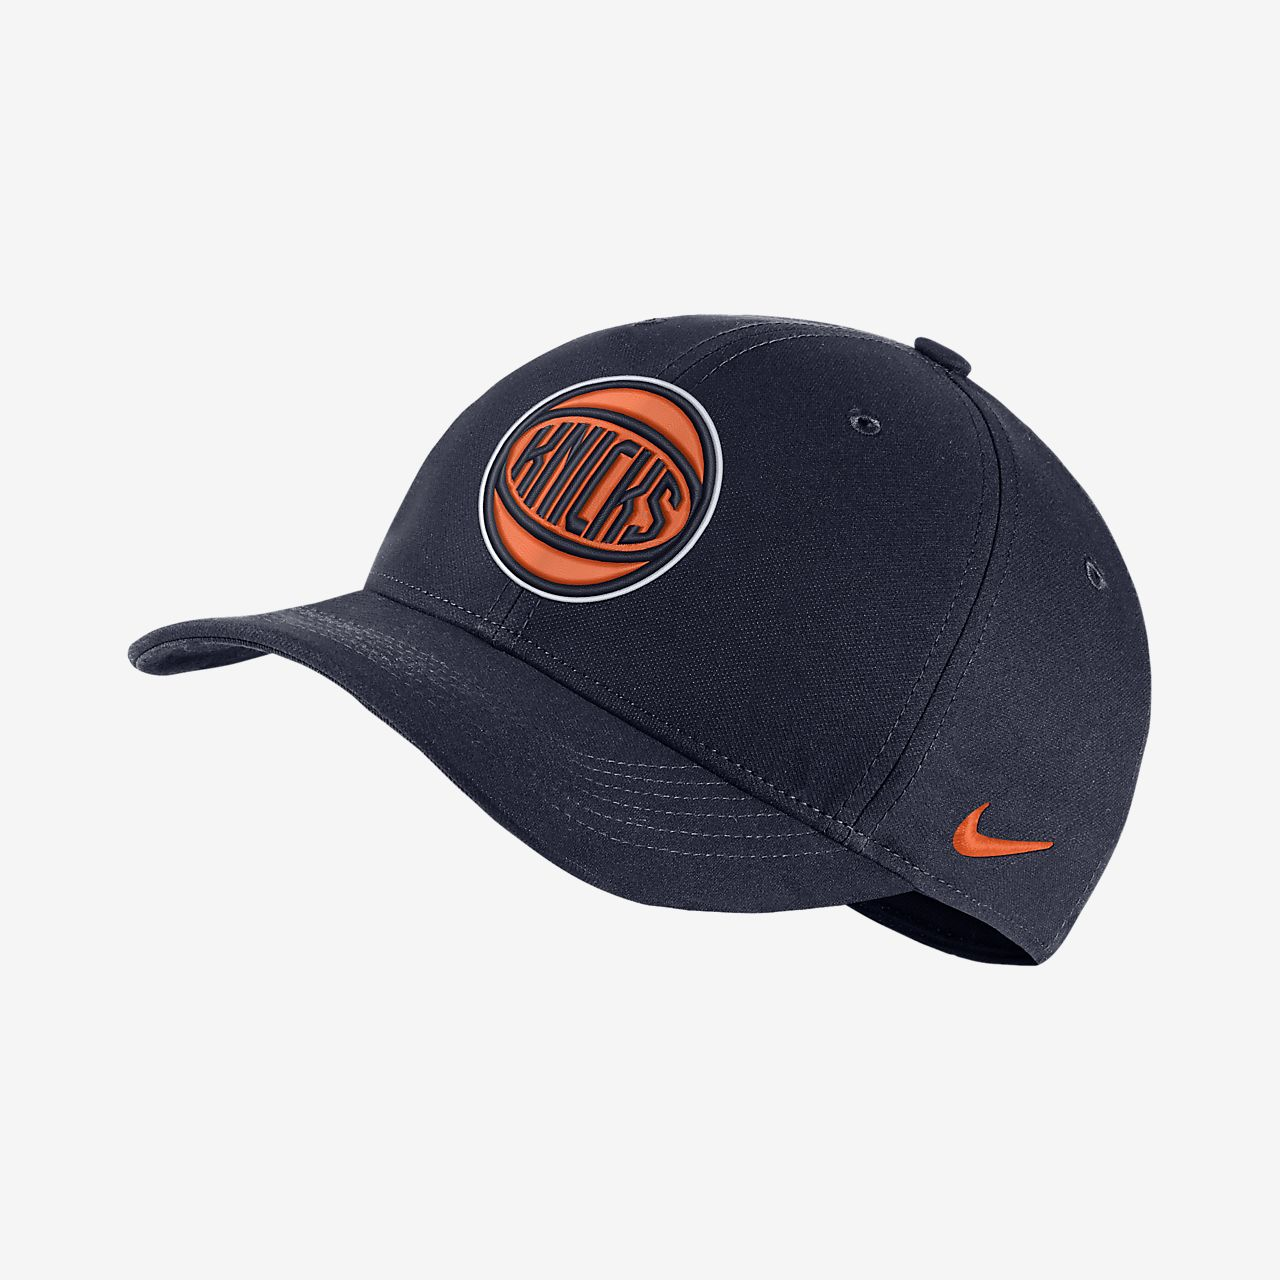 05ab6b5b440c8 New York Knicks City Edition Nike AeroBill Classic99 NBA Hat. Nike ...